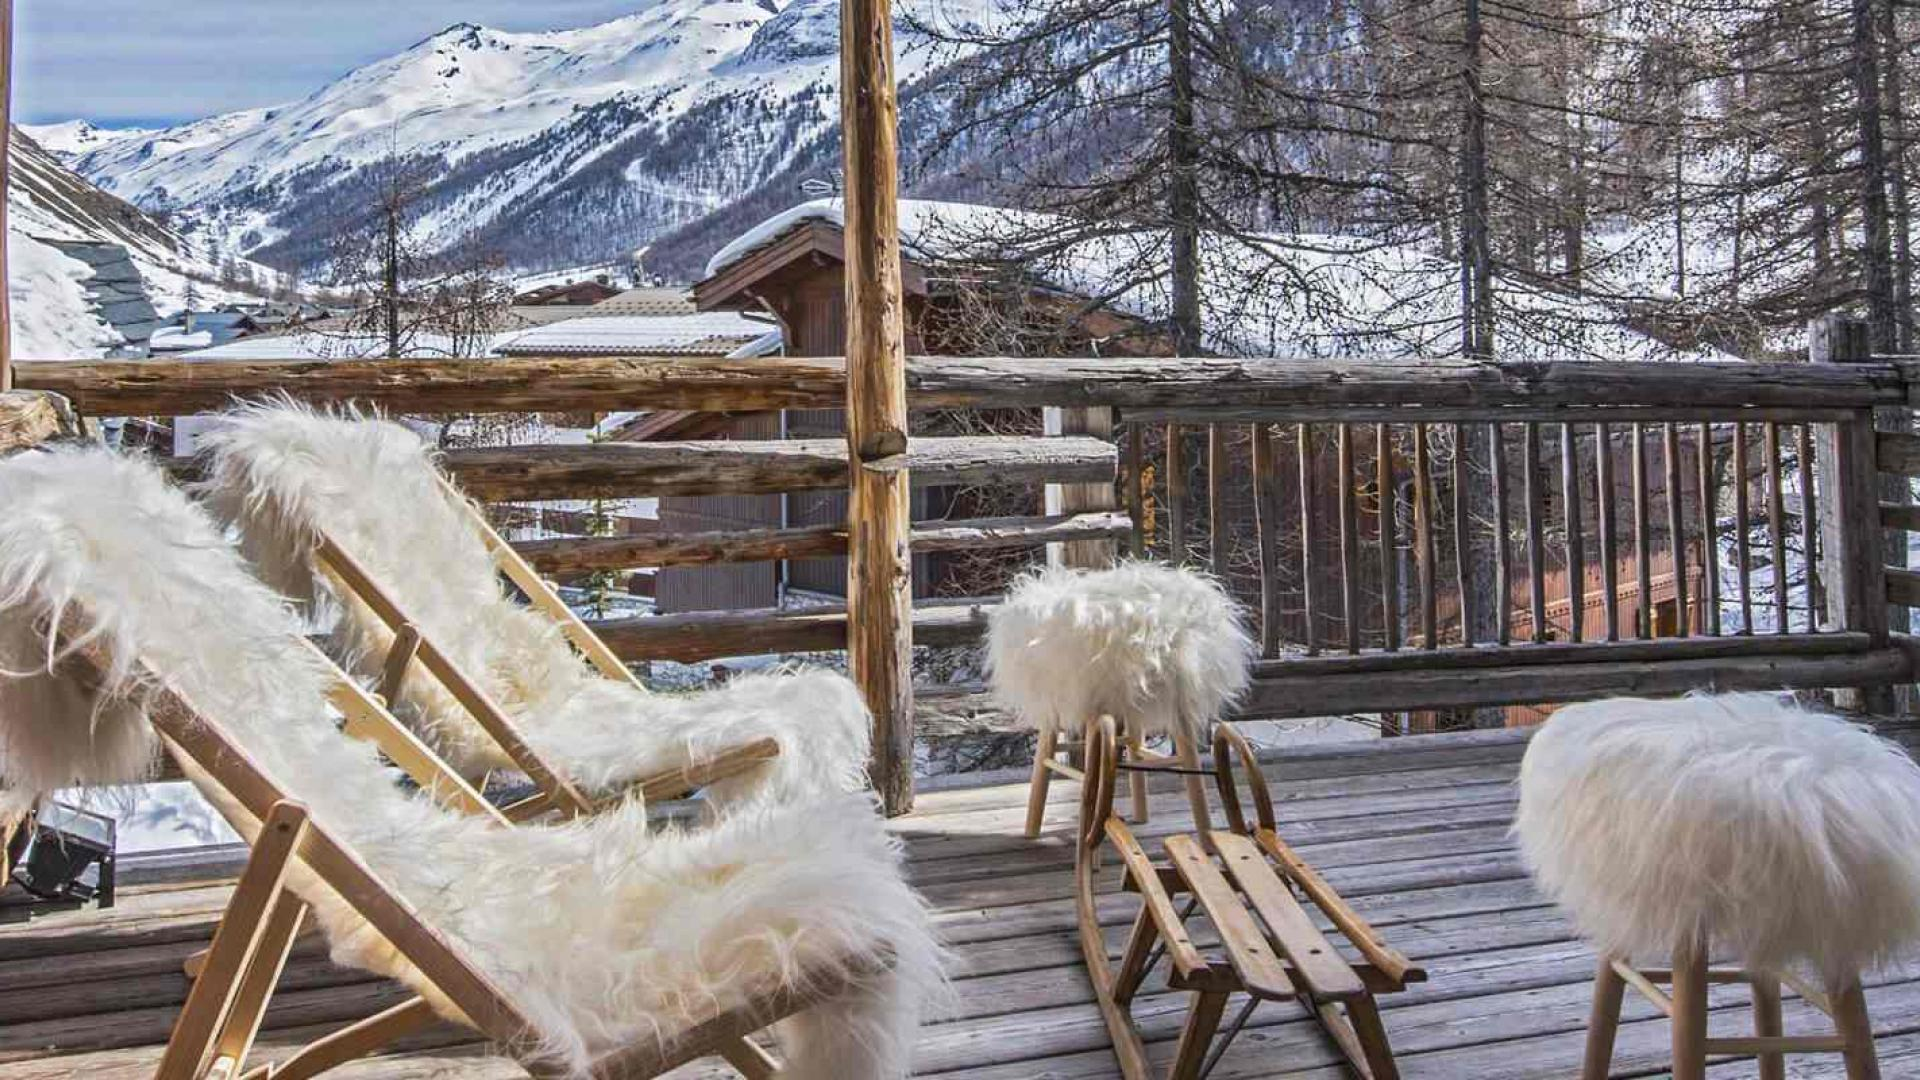 Chalet Alice 3 - Location chalets Covarel - Val d'Isère Alpes - France - Terrasse